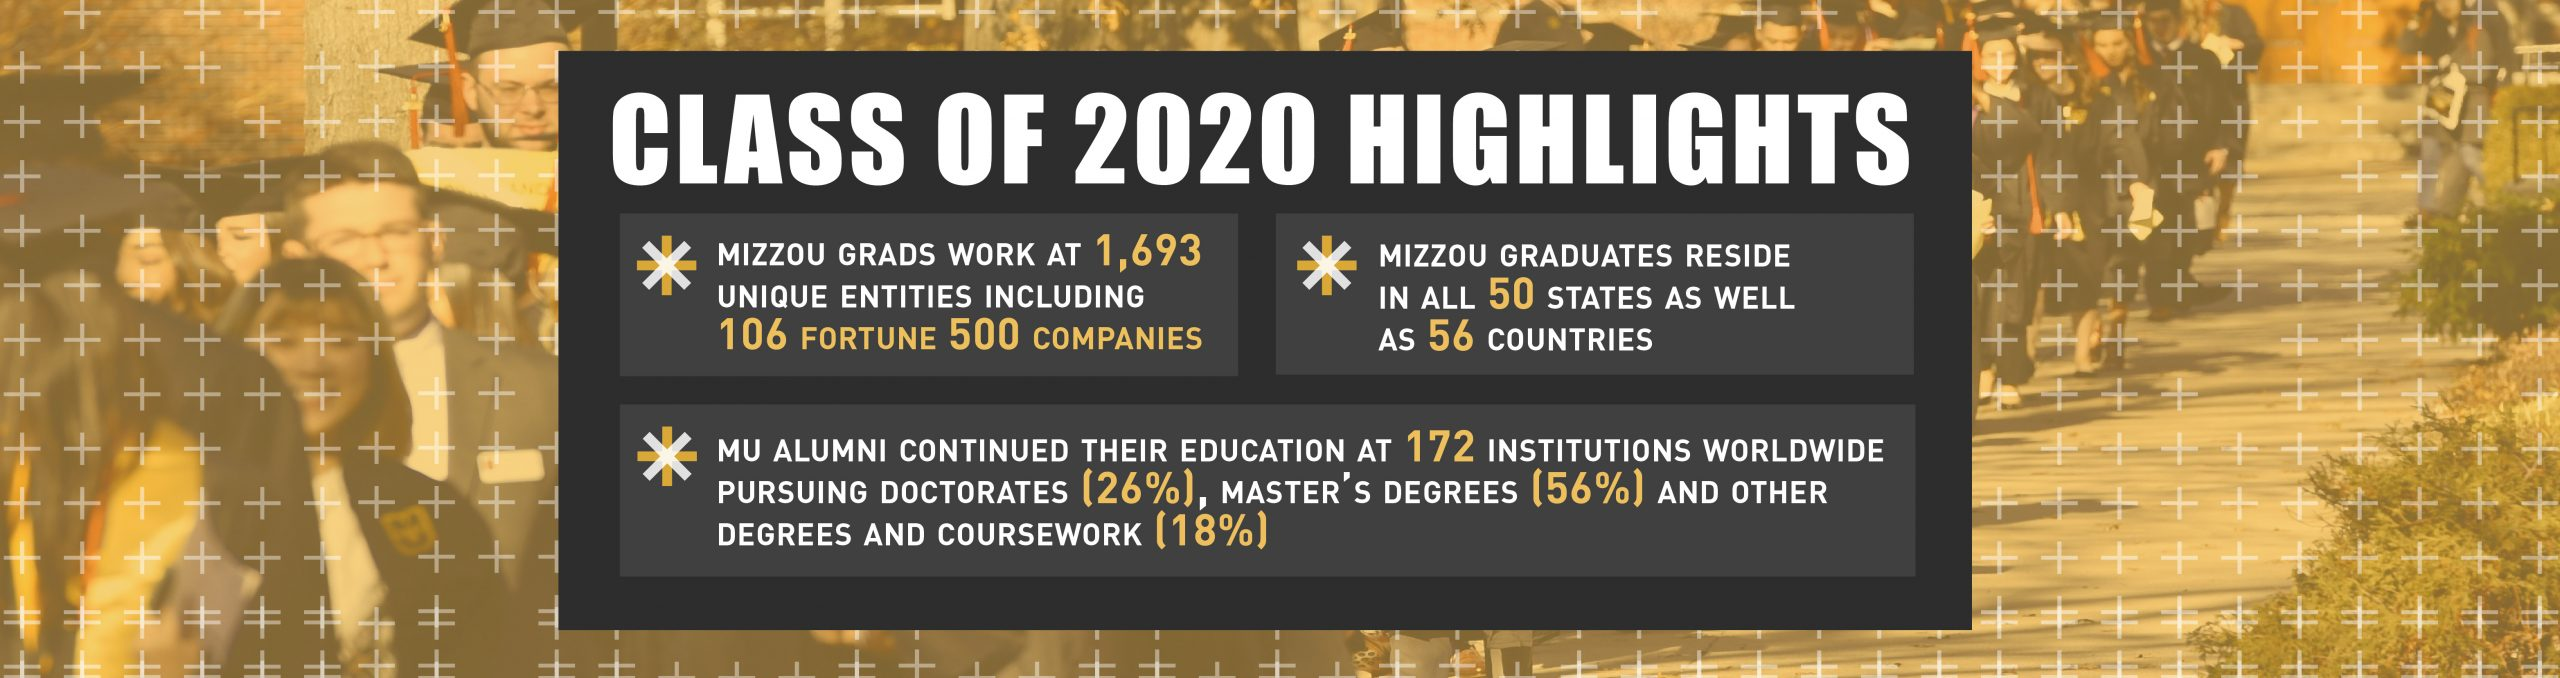 Class of 2020 highlights. MU graduates work at 1,693 unique entities including 106 Fortune 500 companies. MU graduates reside in all 50 states as well as 56 countries. MU alumni continued their education at 172 institutions worldwide pursuing doctors (26%), masters degrees (56%), and other degrees and coursework (18%).